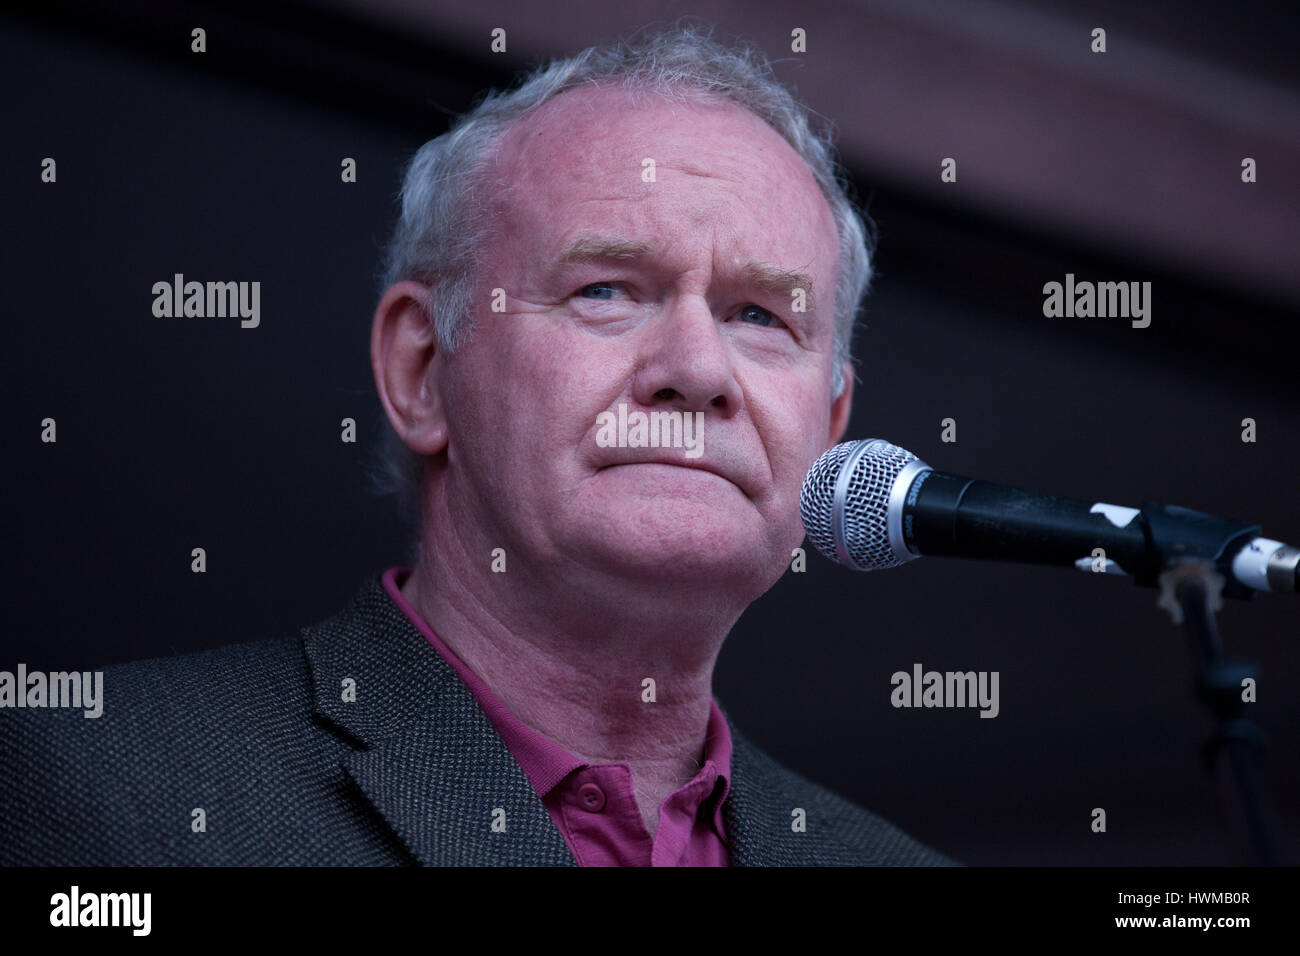 London, UK. 20th June, 2015. Martin McGuinness addresses the People's Assembly's 'End Austerity Now' - Stock Image